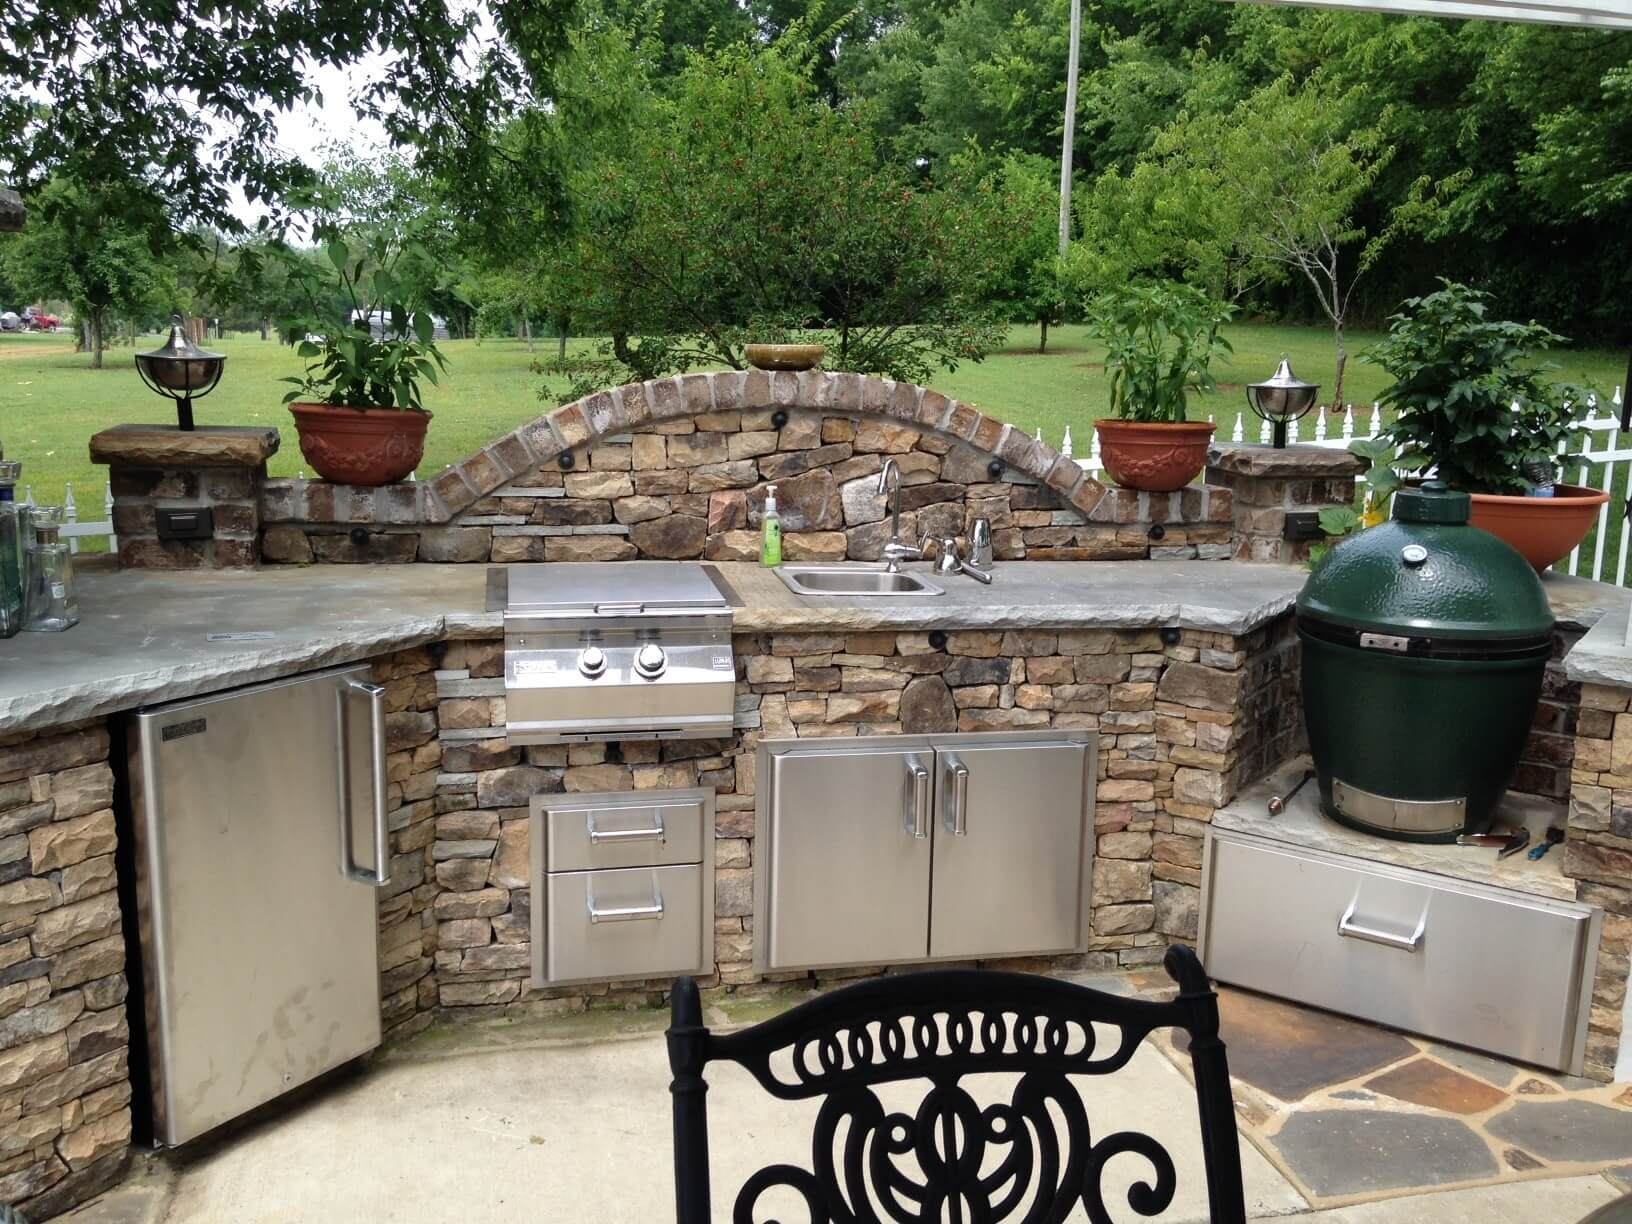 17 functional and practical outdoor kitchen design ideas for Small backyard outdoor kitchen